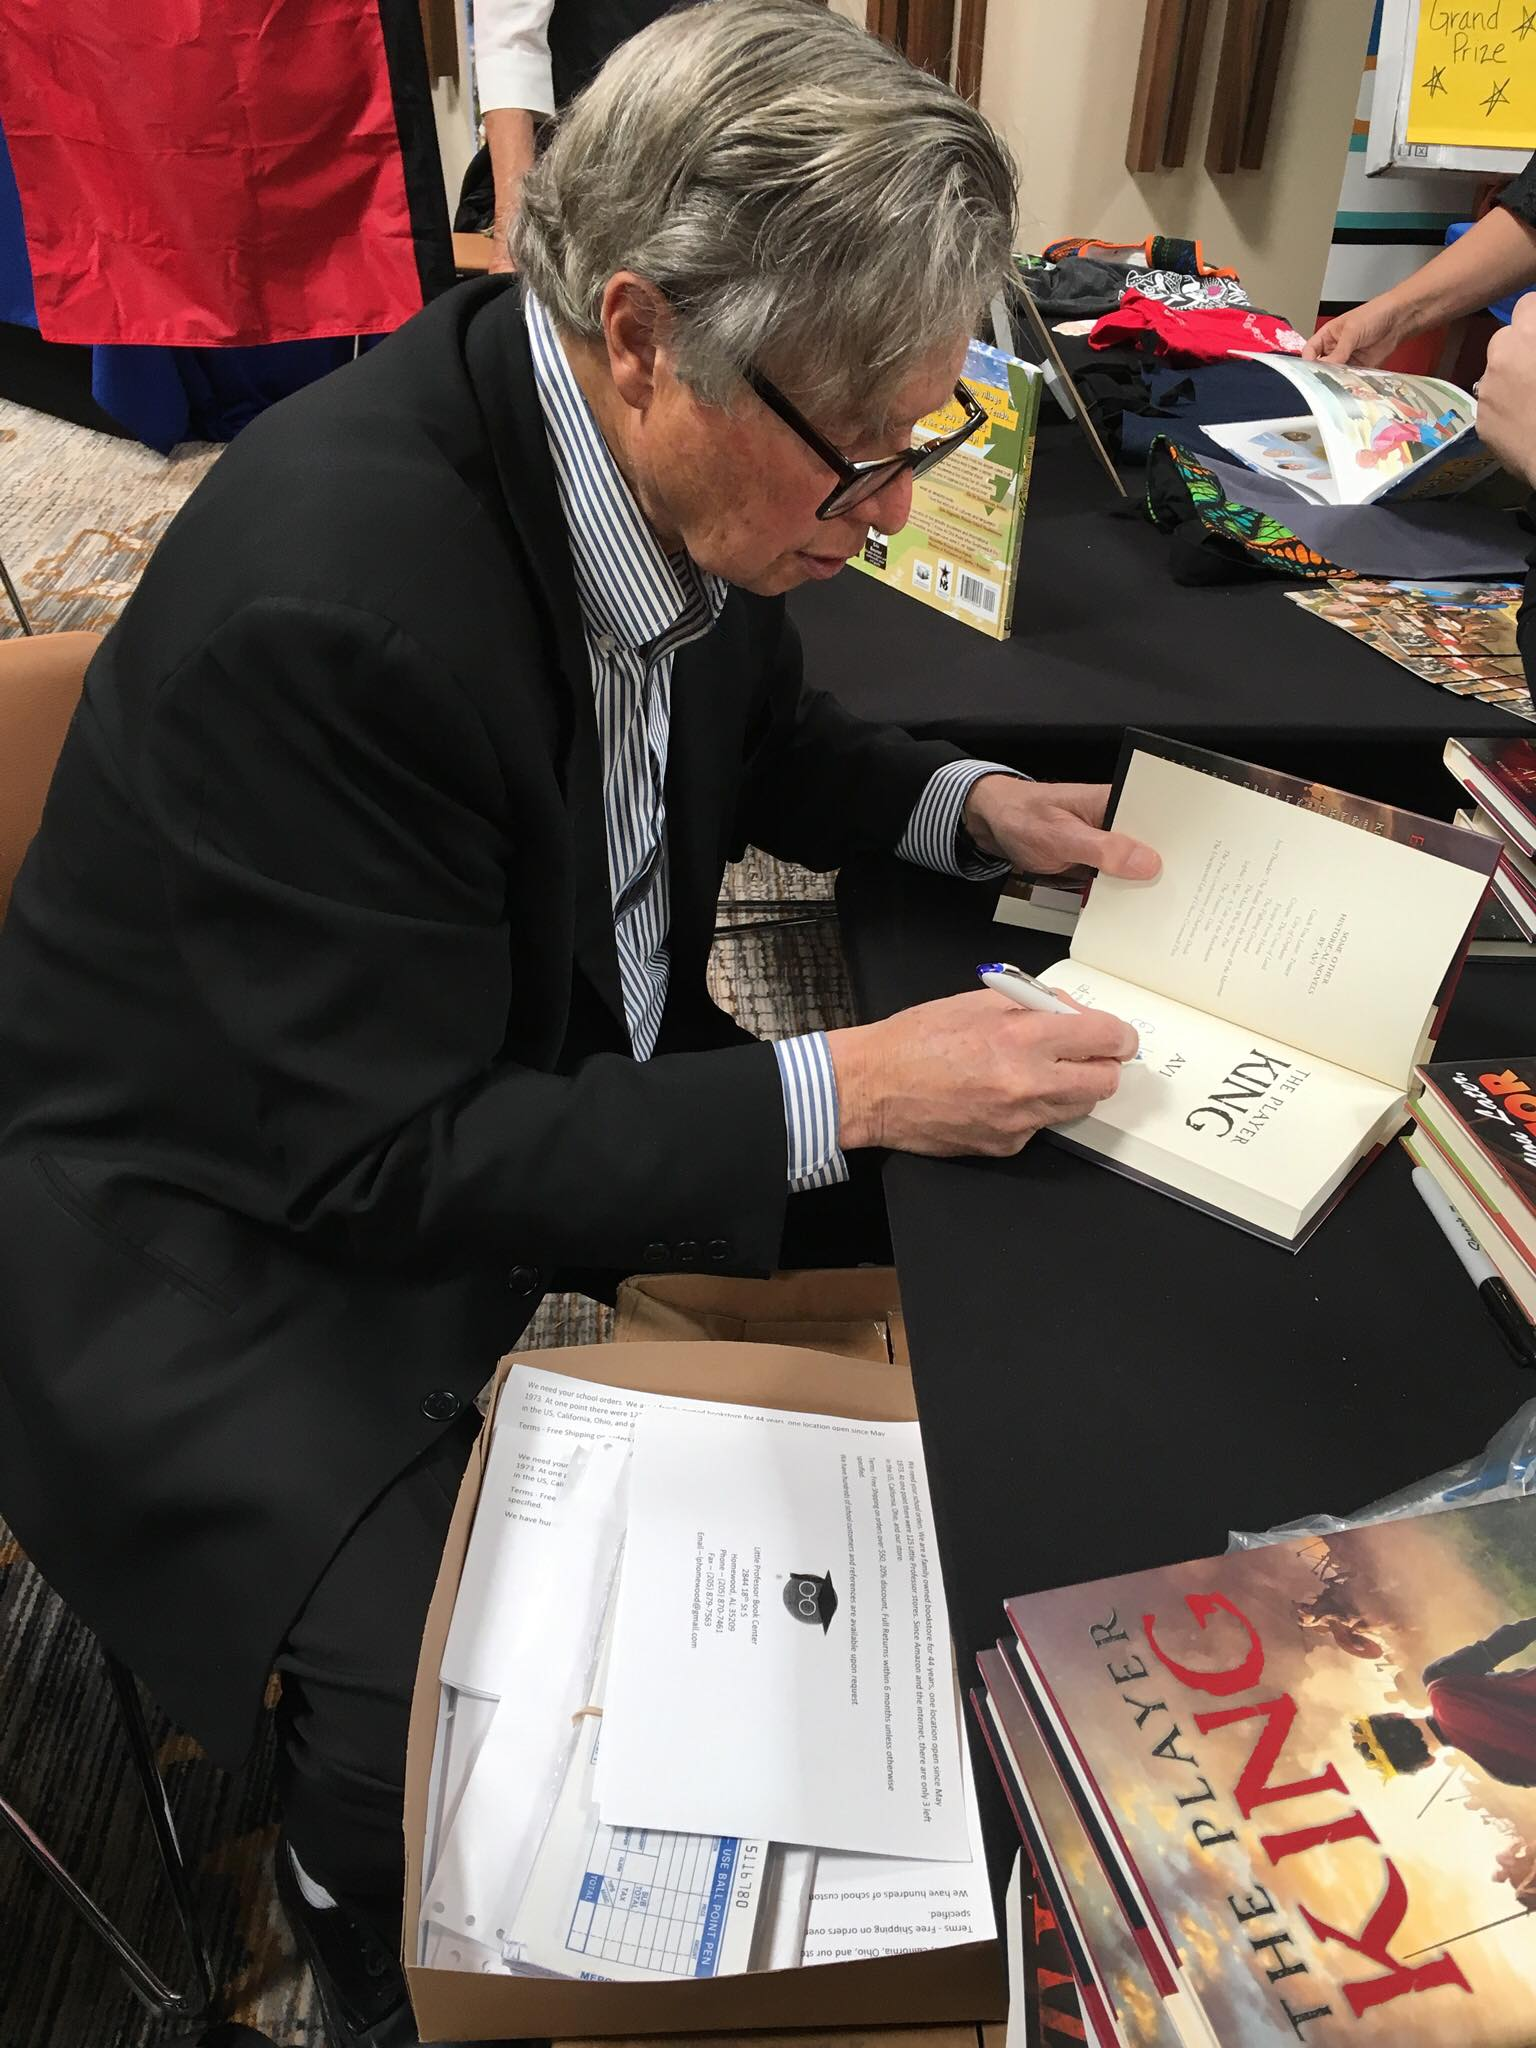 Author Avi at a book signing for his latest release, The Player King